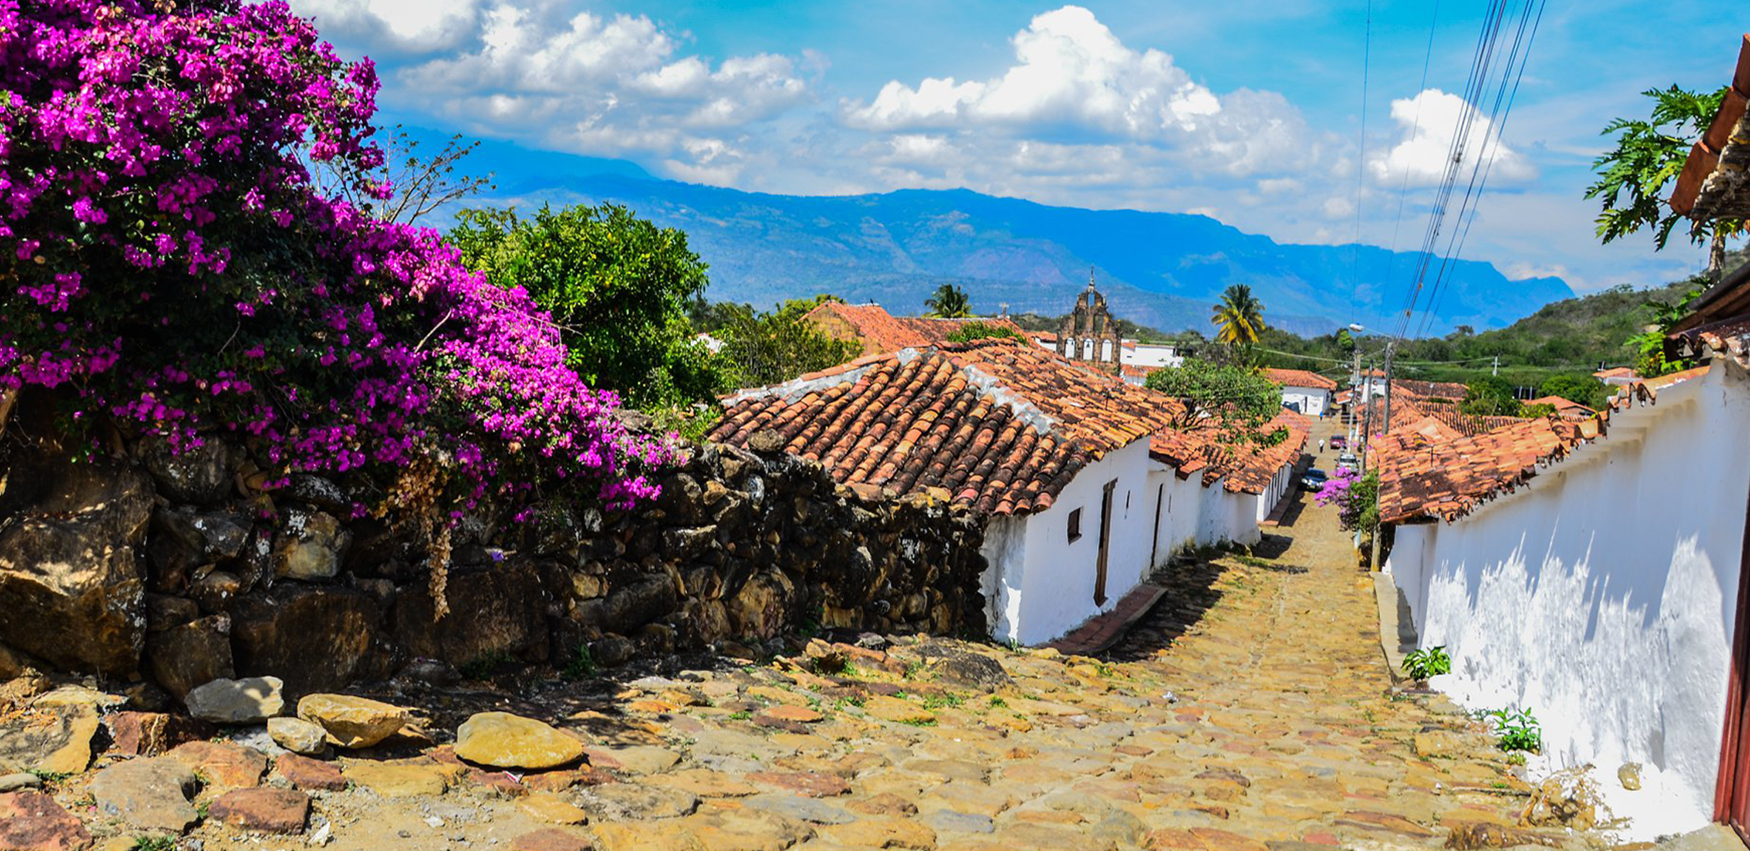 Discovering Colombia's colonial treasures